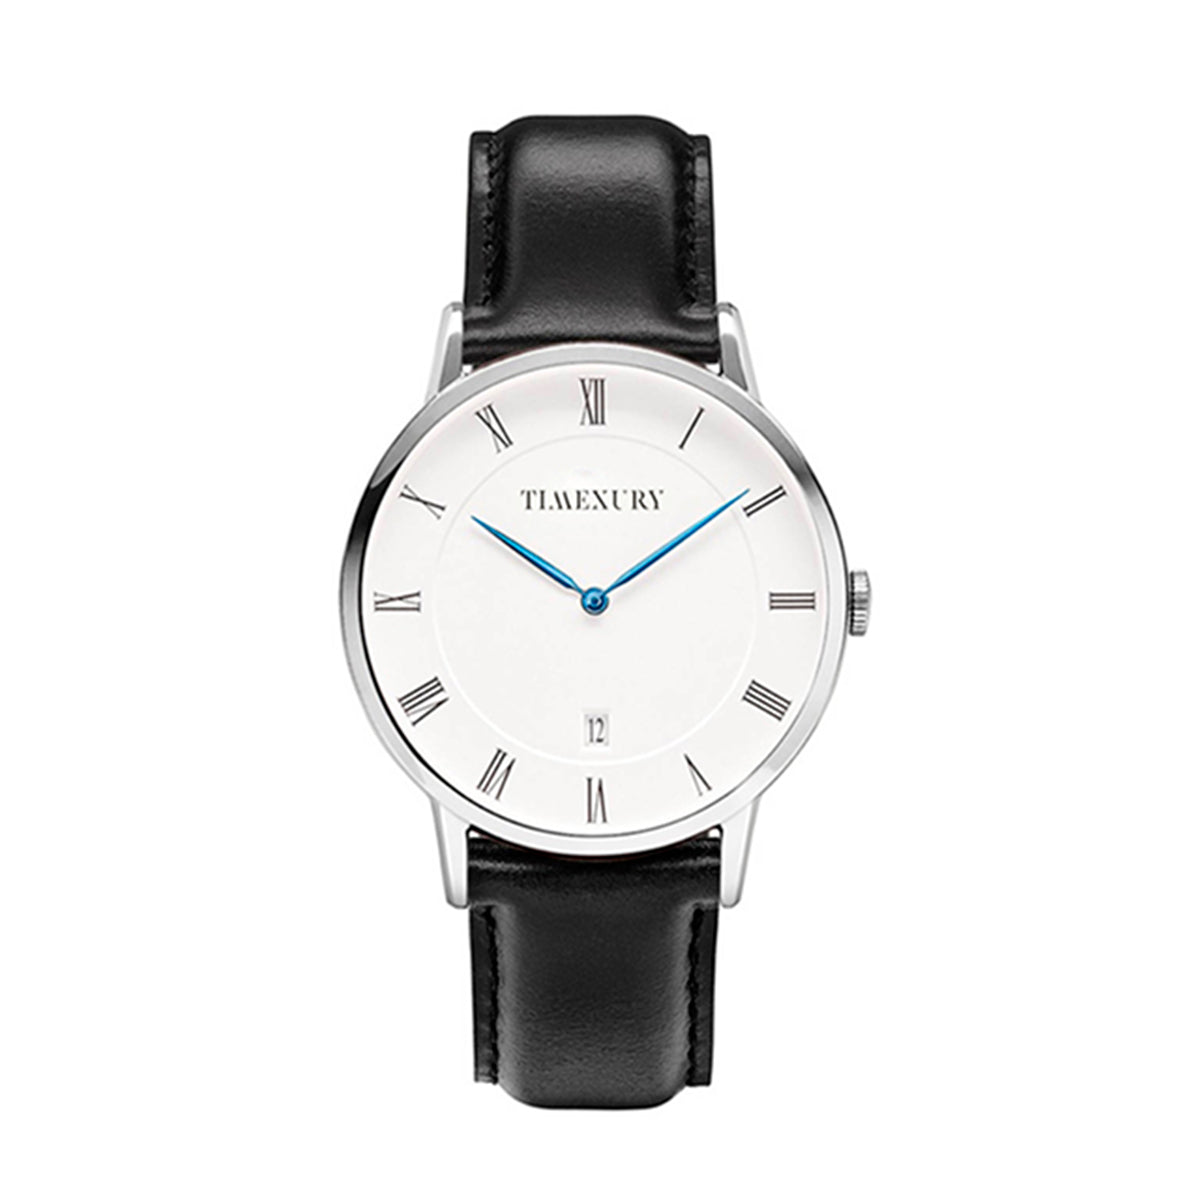 Heritage Silver & Black - TimexuryWatches